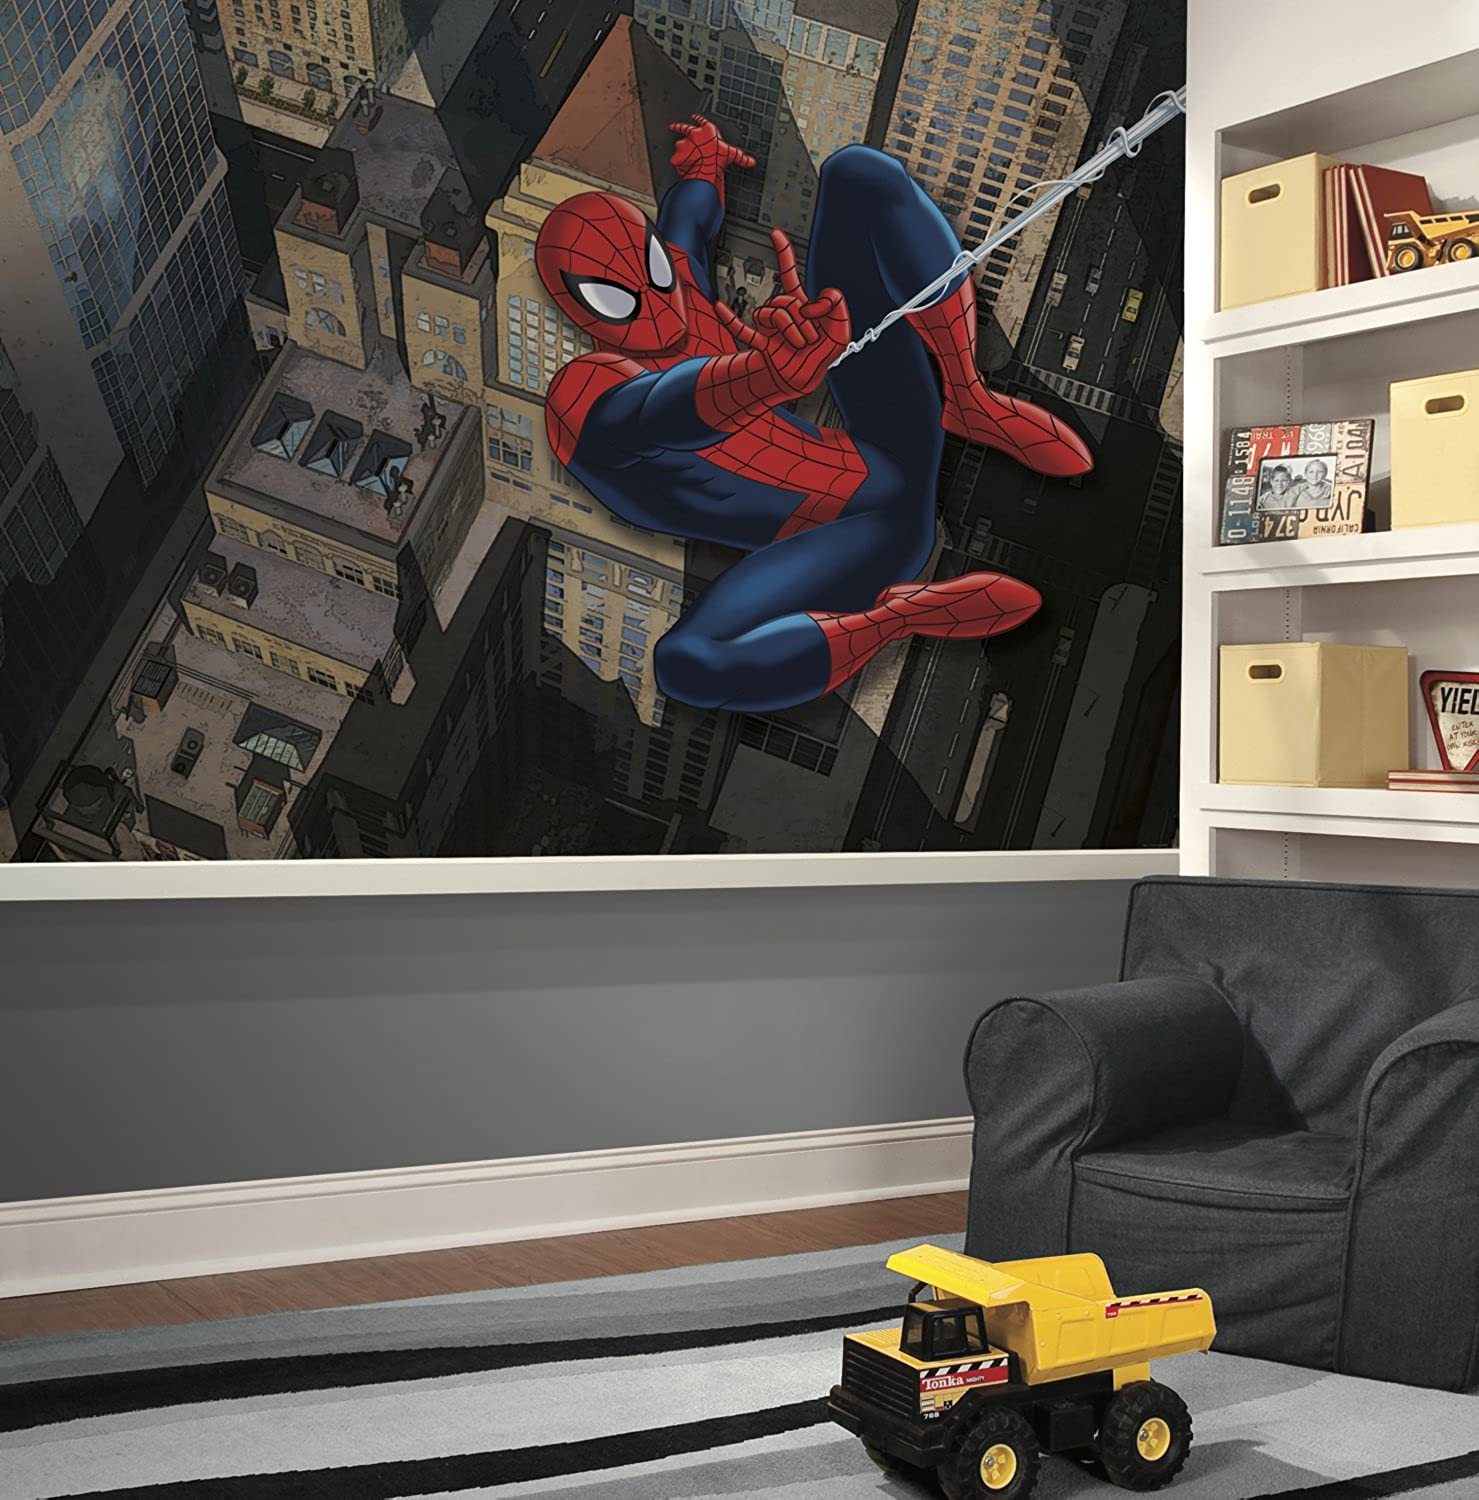 RoomMates Spiderman - Ultimate Spiderman Cityscape Prepasted, Removable Wall Mural - 6' X 10.5'